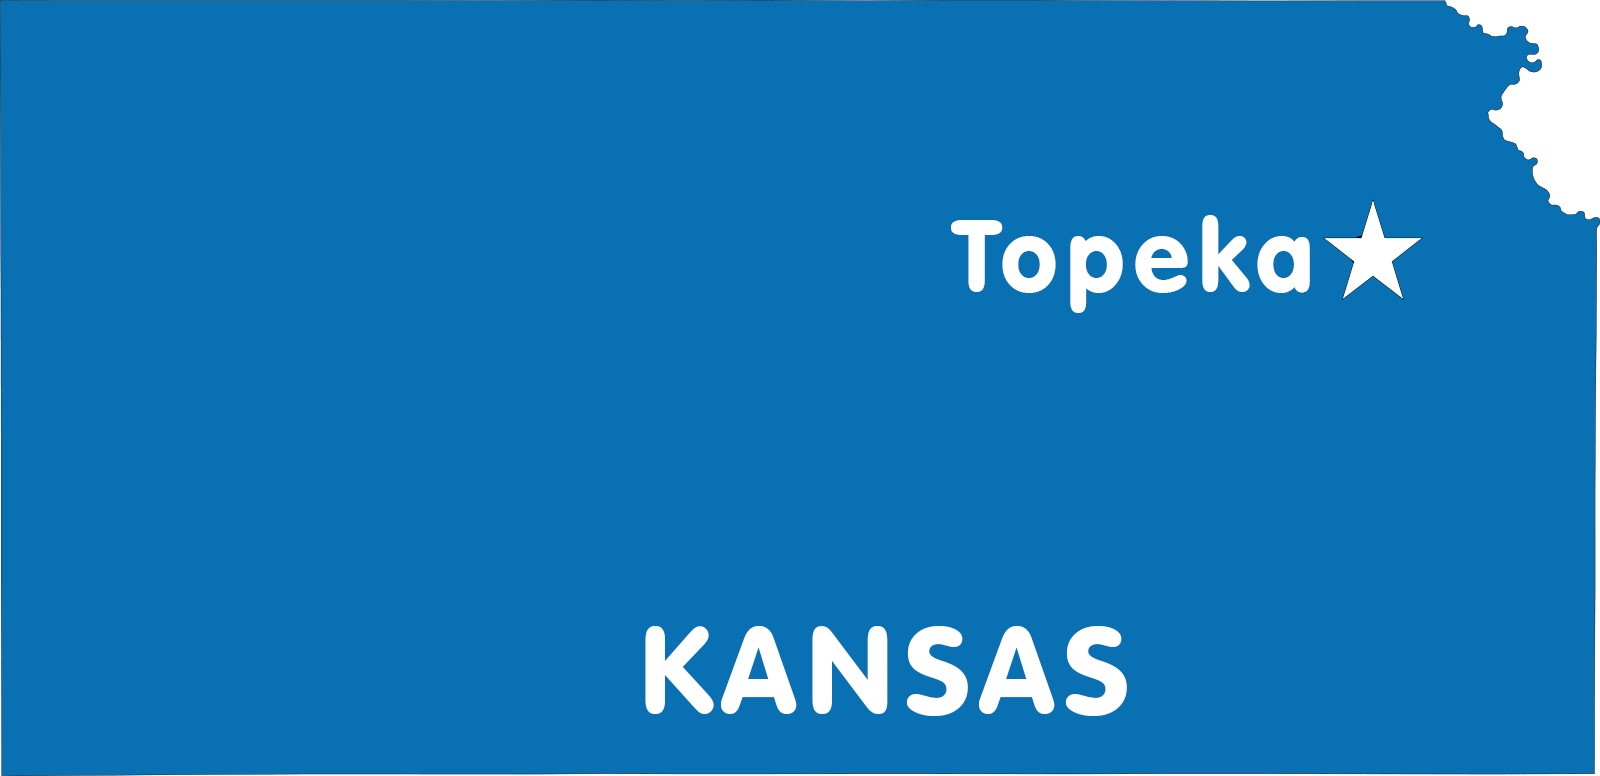 Kansas Capital Map | Large Printable High Resolution and Standard M